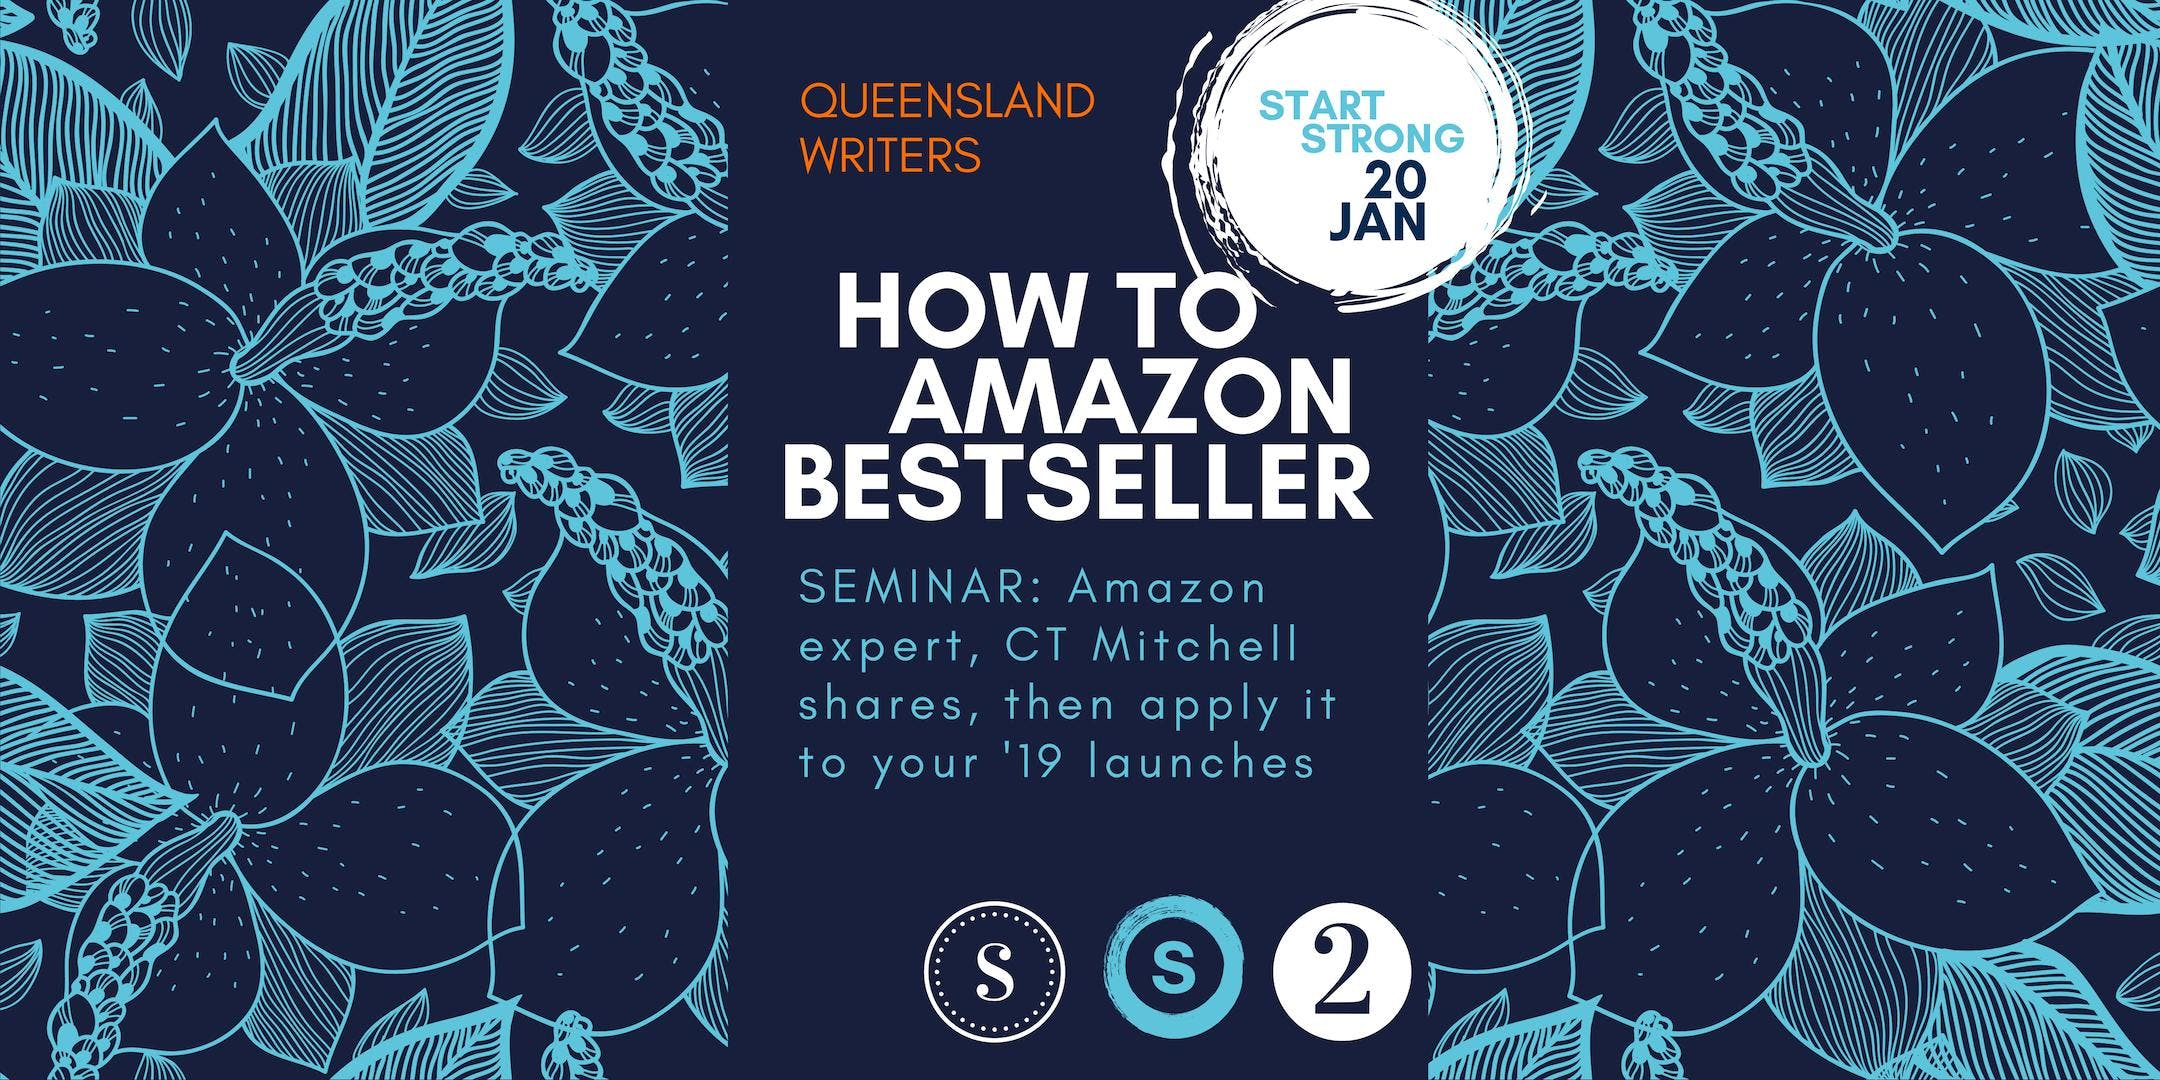 How to Have an Amazon Bestseller with CT Mitc